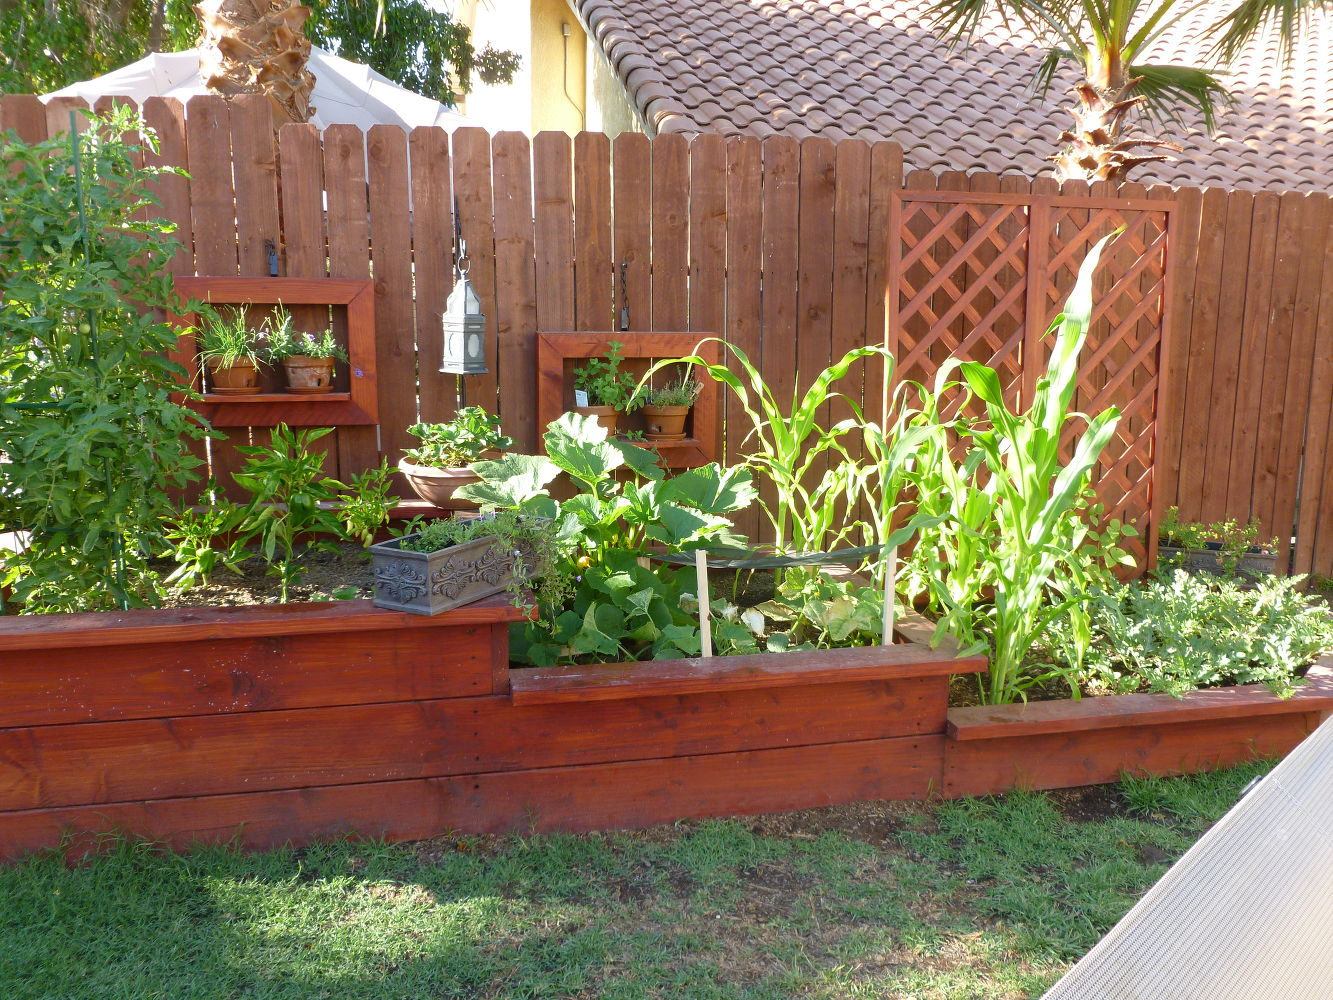 13 Easiest Ways To Build A Raised Vegetable Bed In Your Garden Hometalk